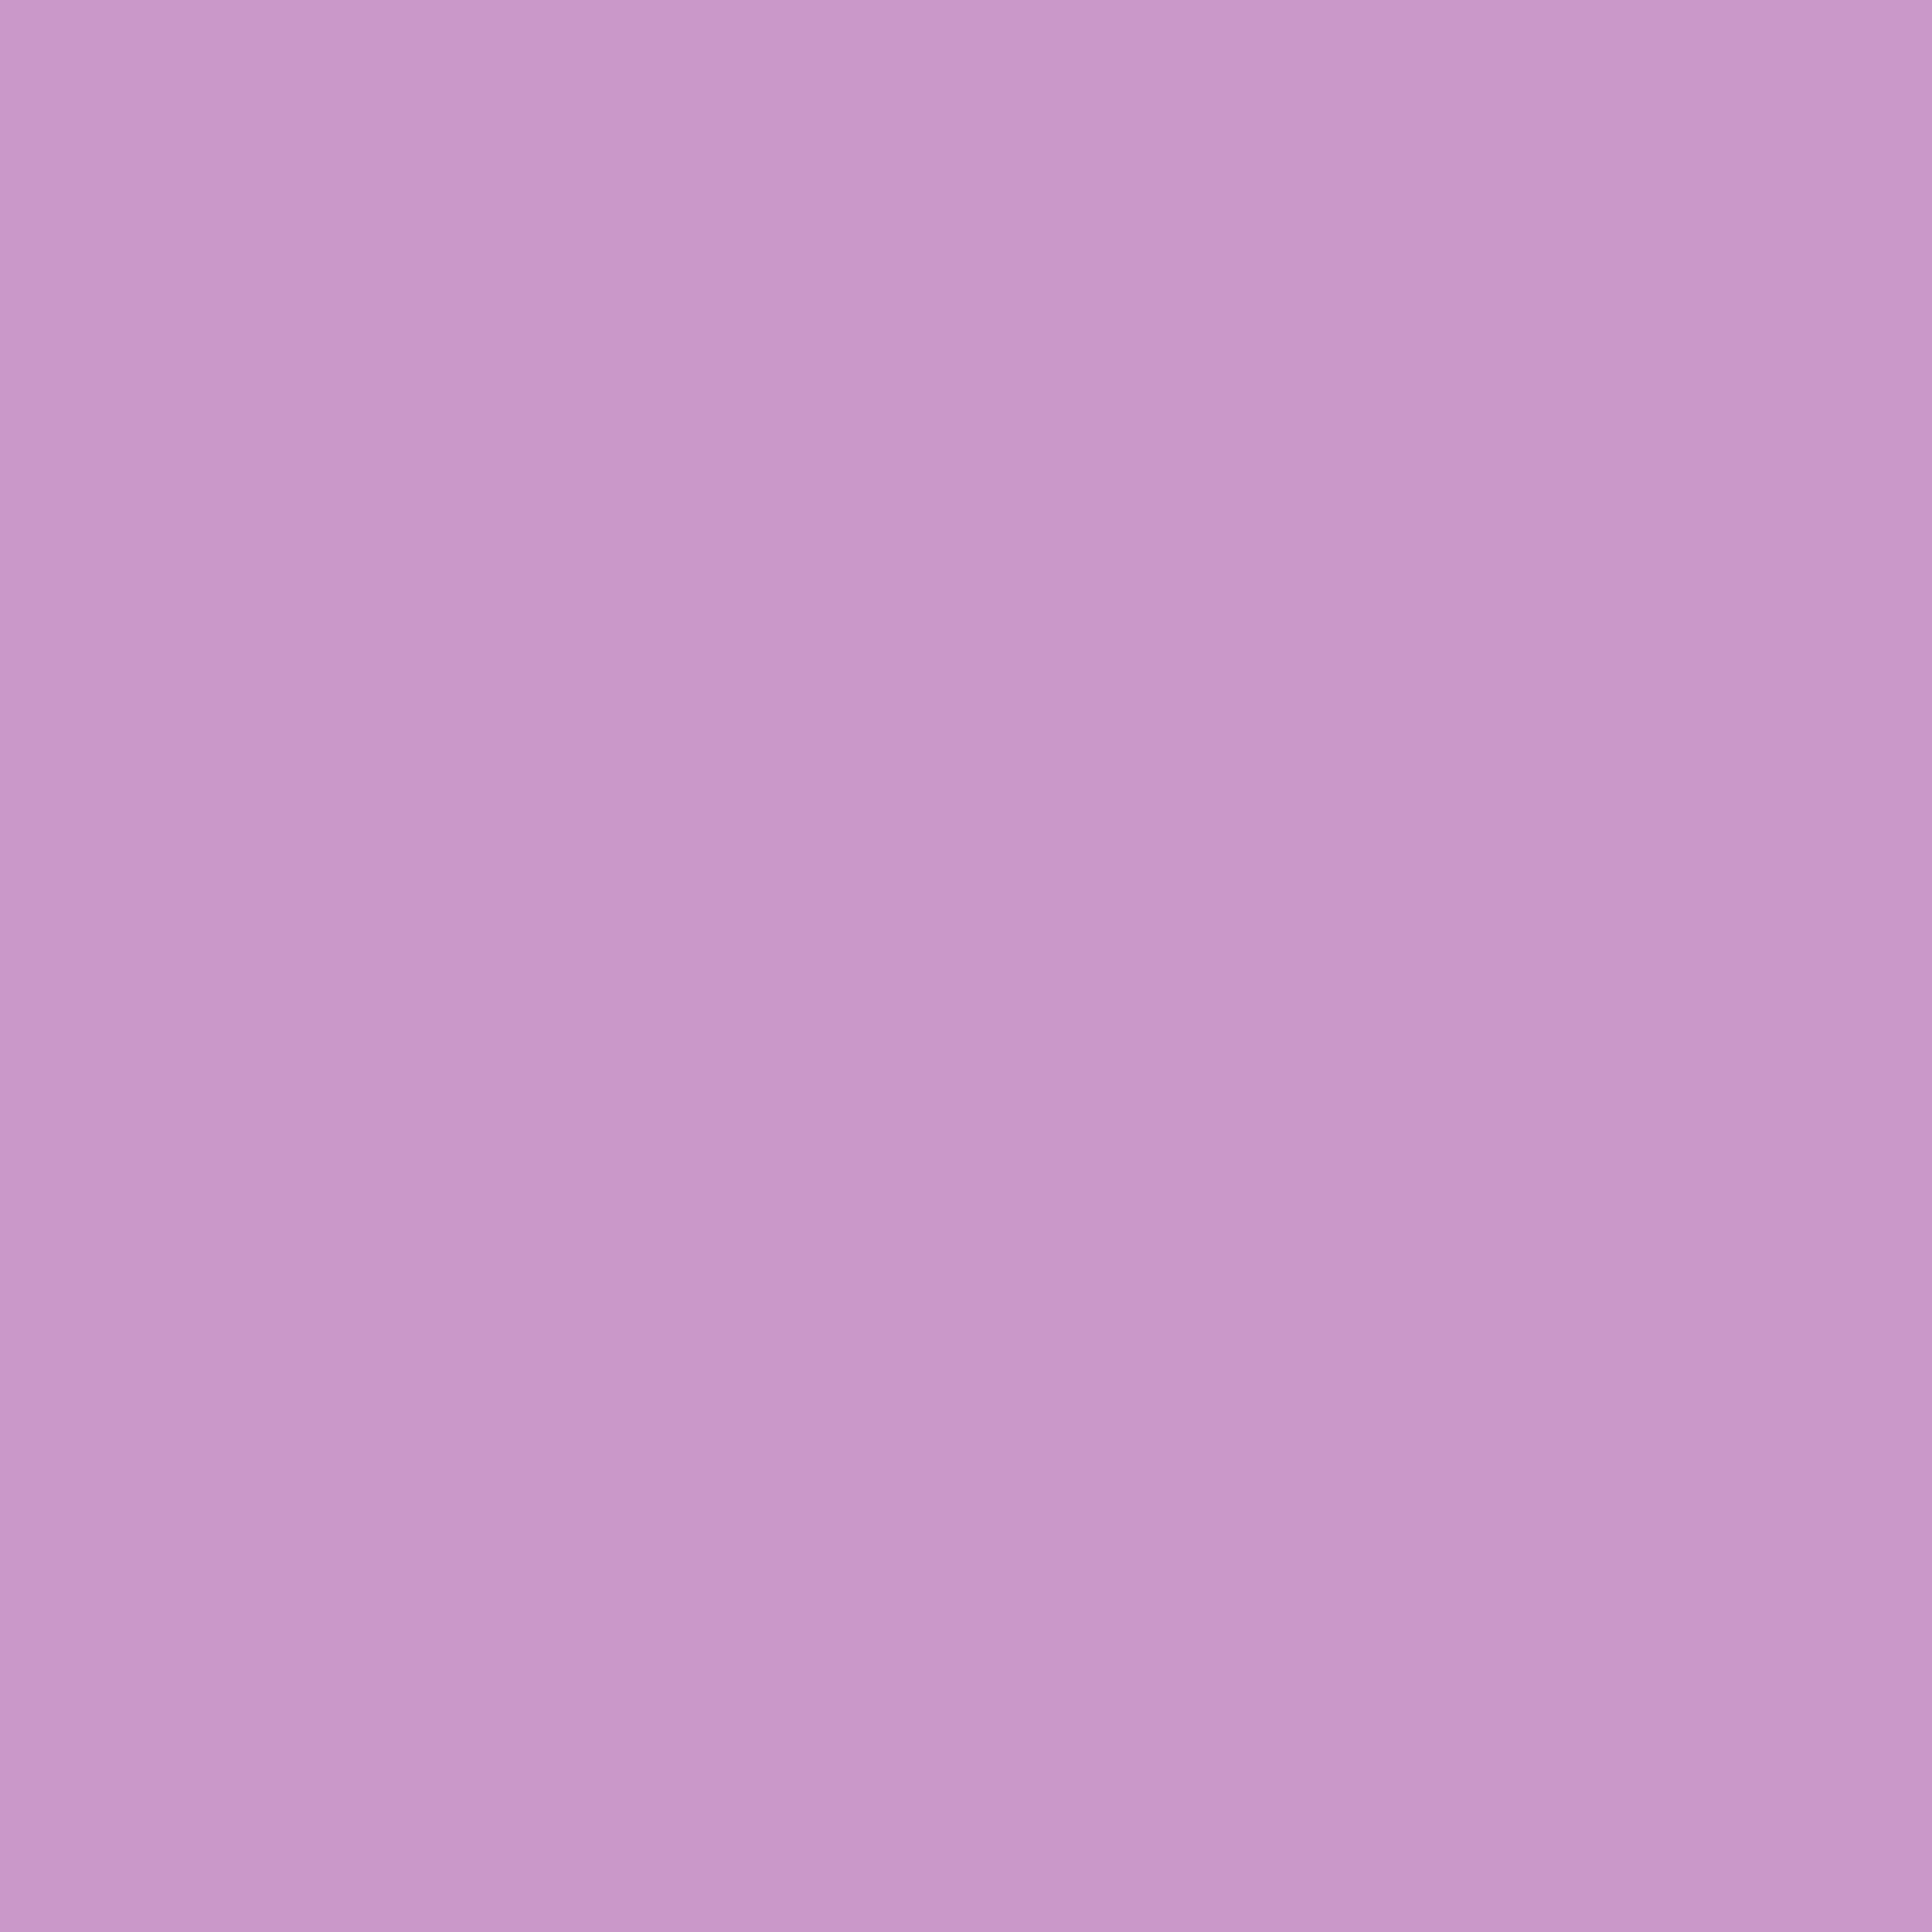 2048x2048 Pastel Violet Solid Color Background for solid pastel purple background  584dqh